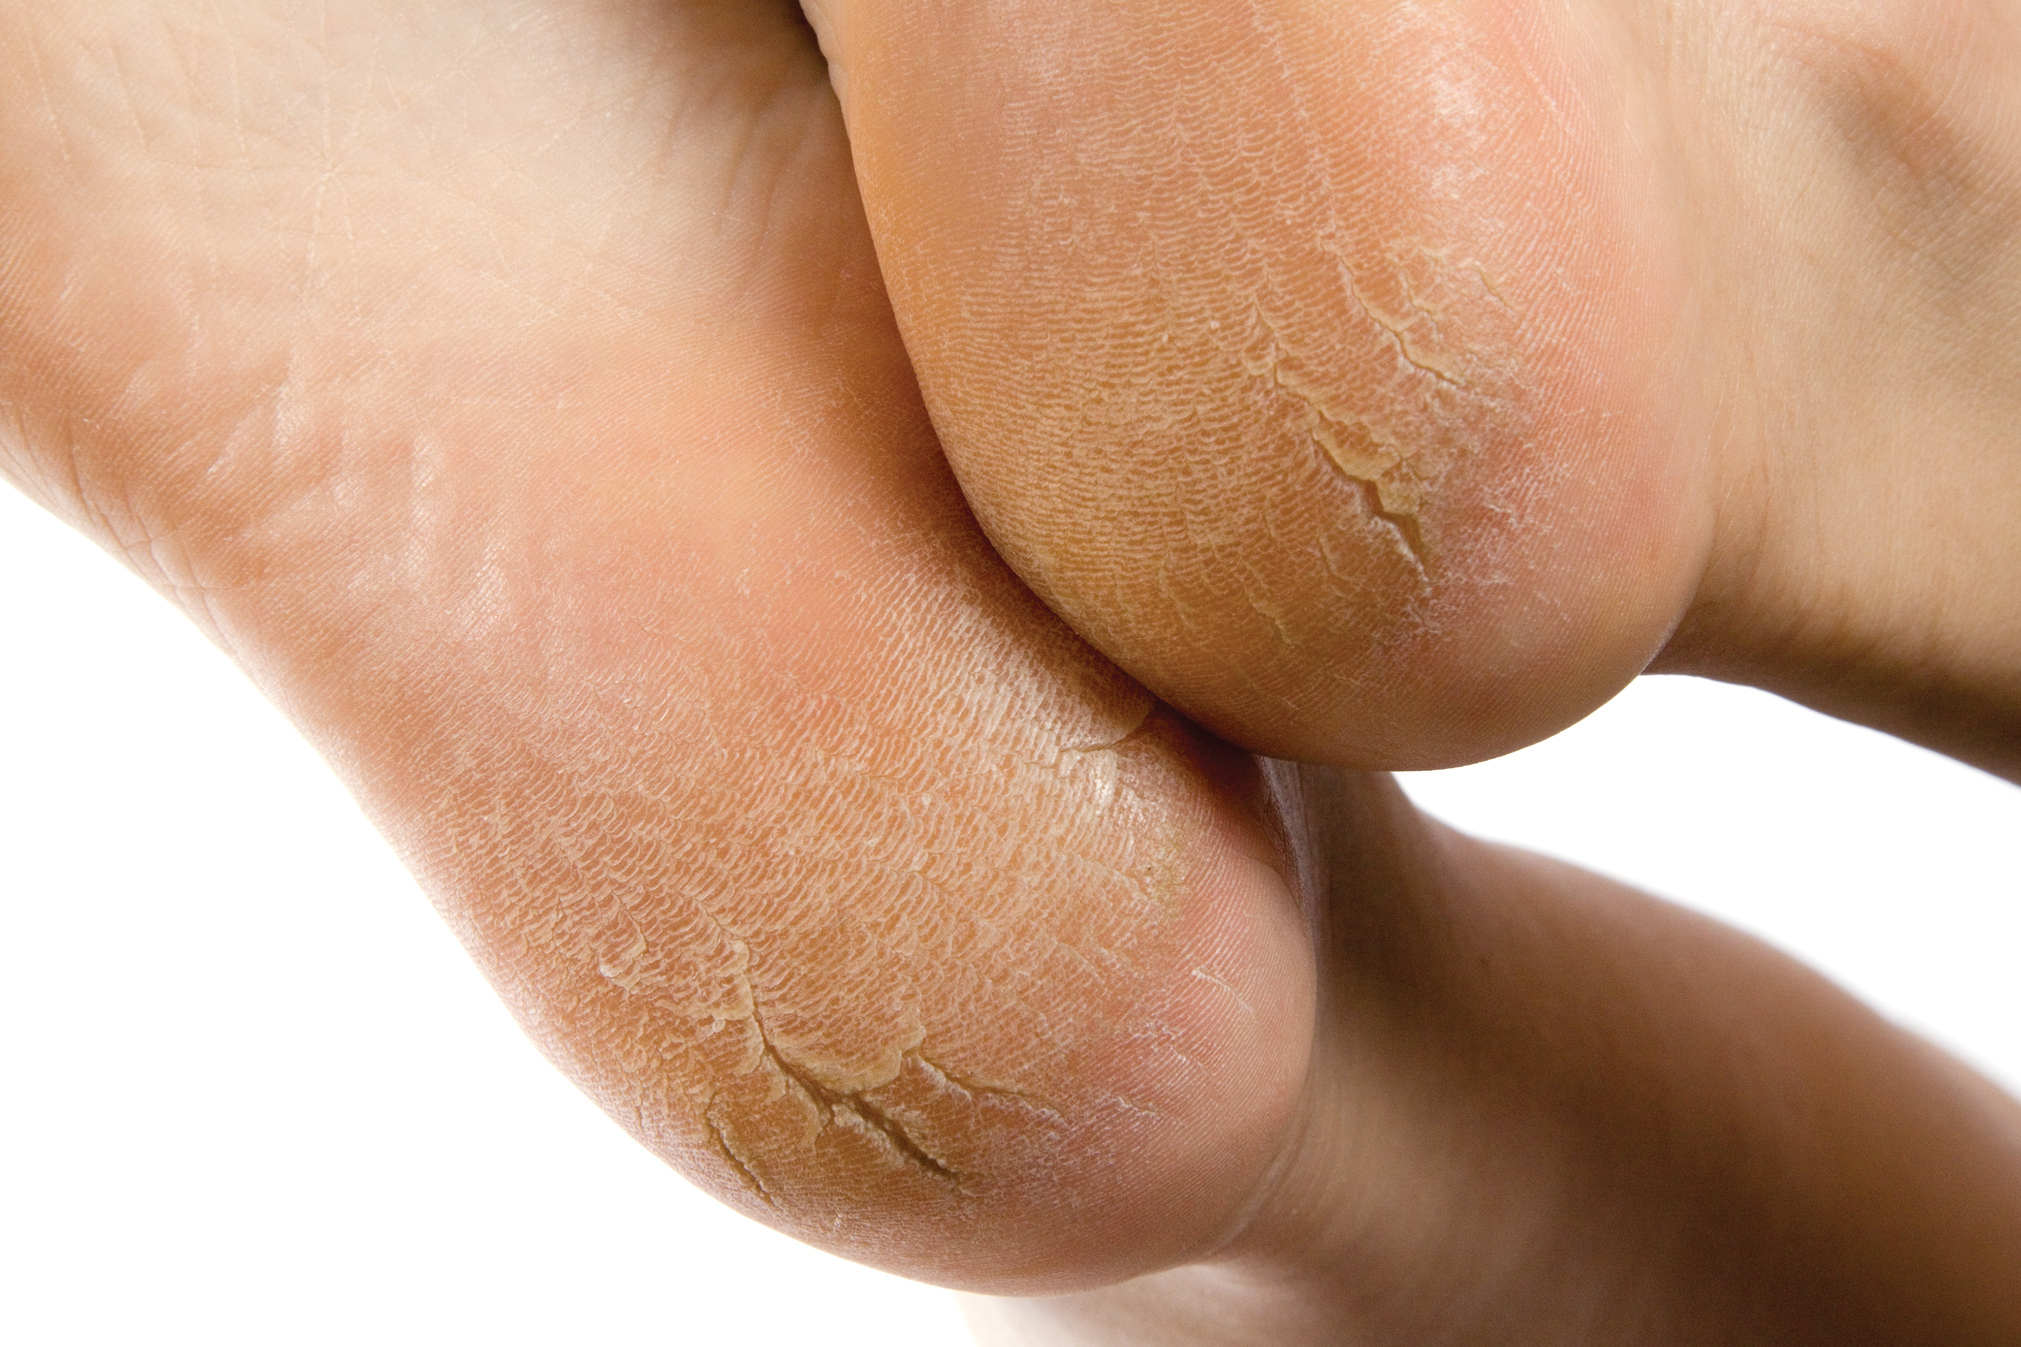 How To Treat Clients With Heel Fissures